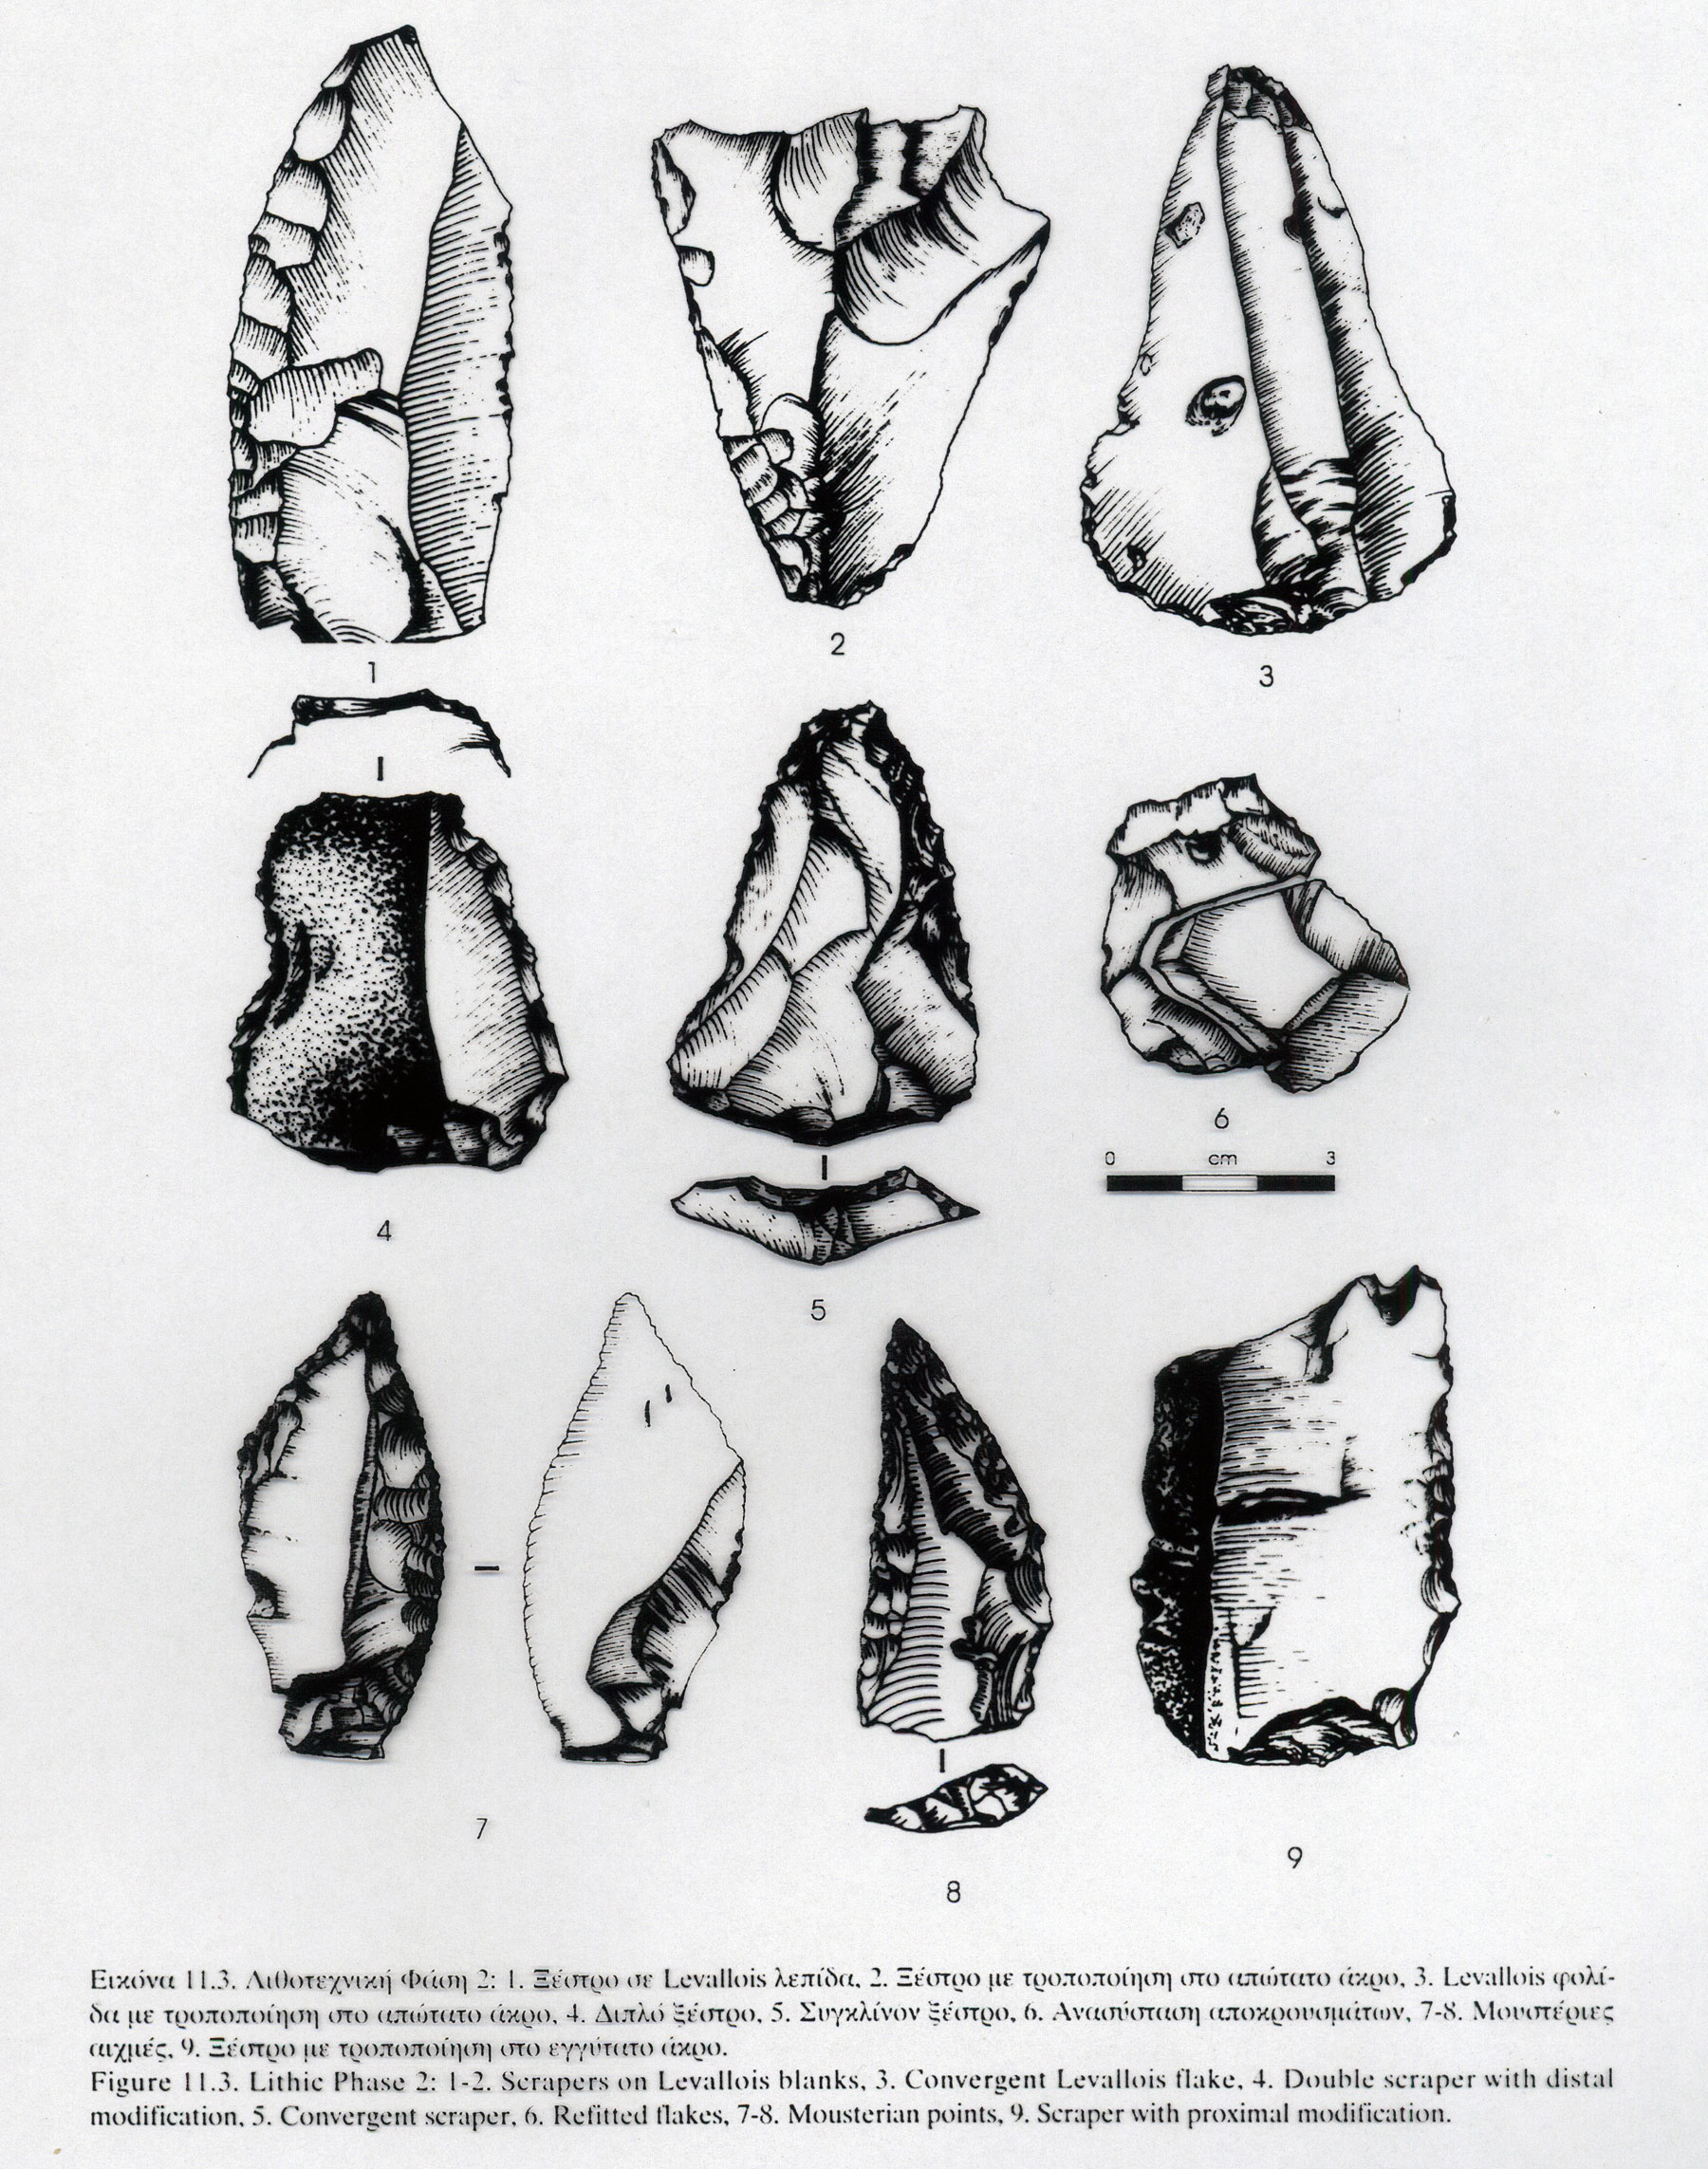 Tools used in radiocarbon dating 7